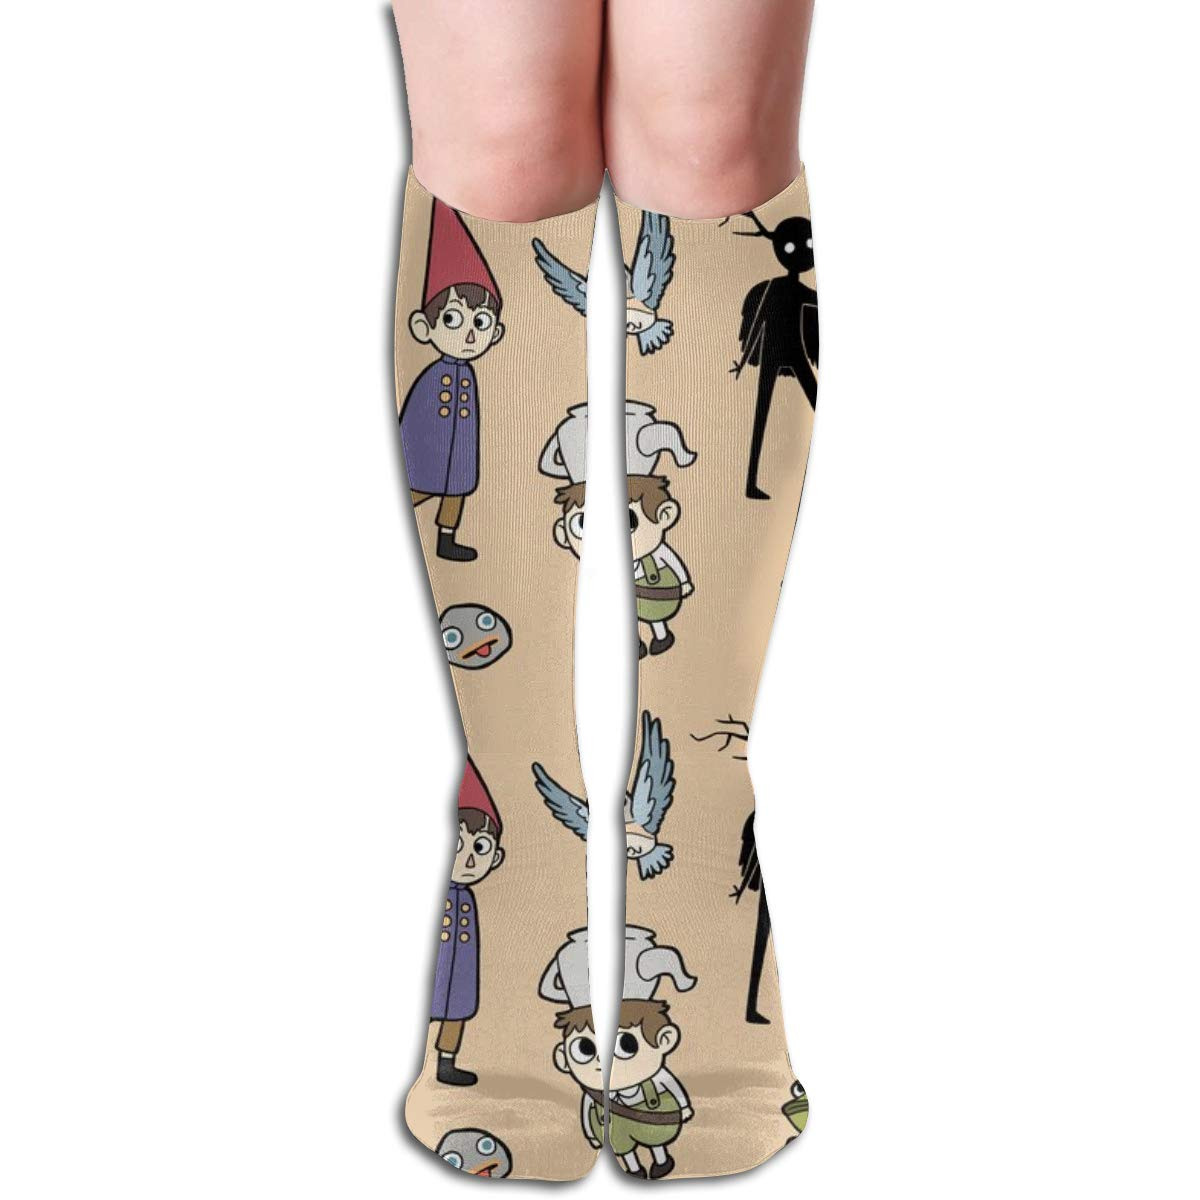 19.6 inch Pillowcase shop Over The Garden Wall Pattern Women Tube Knee Thigh High Stockings Cosplay Socks 50cm